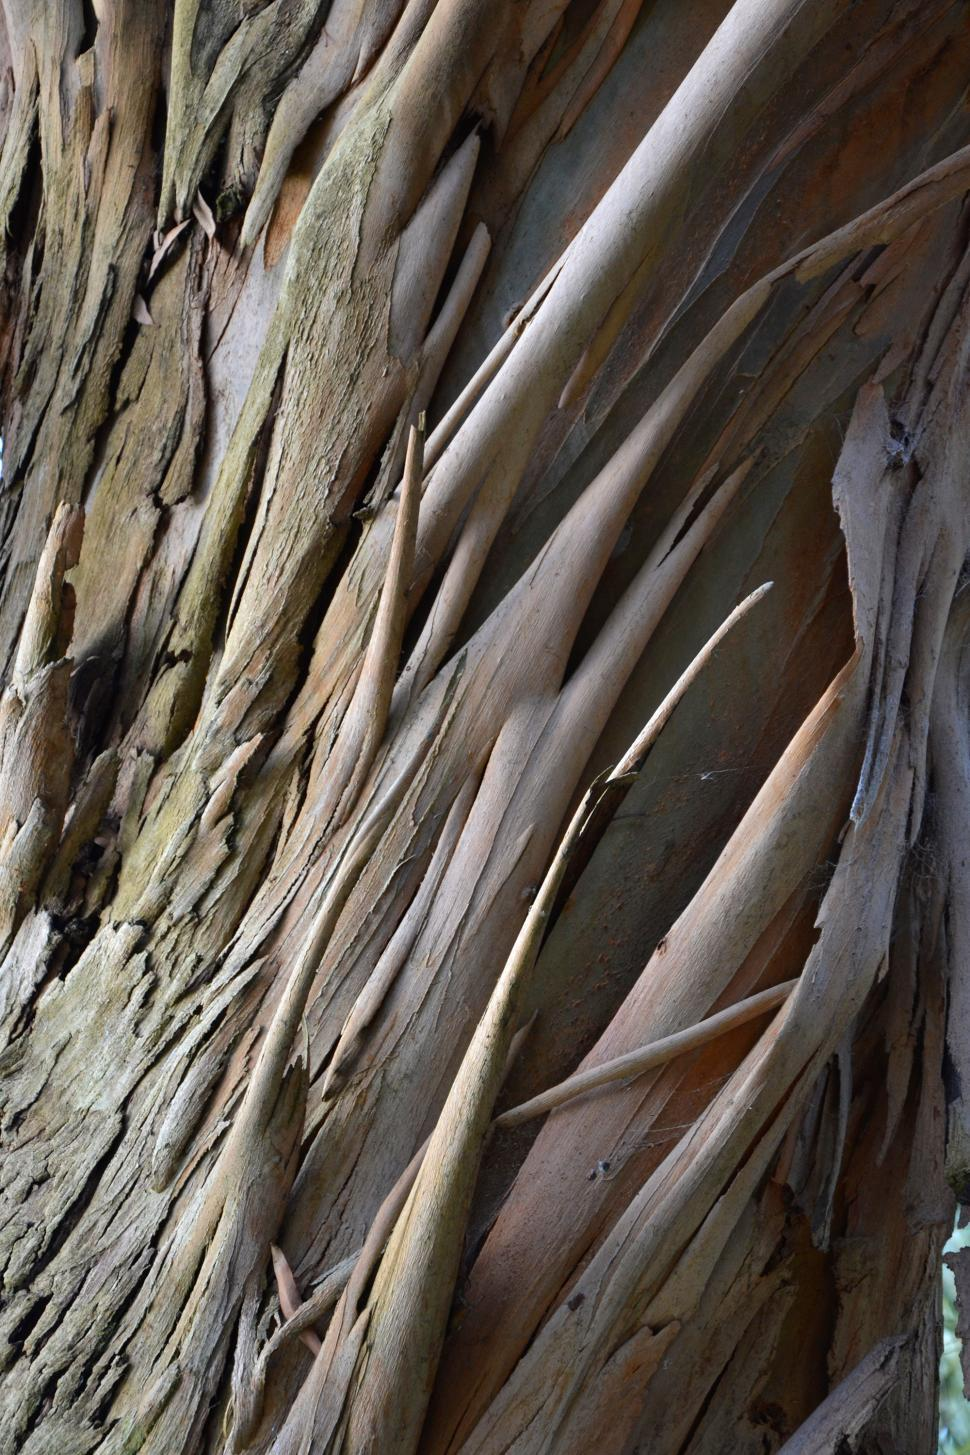 Download Free Stock HD Photo of Spinning Gum bark  Online